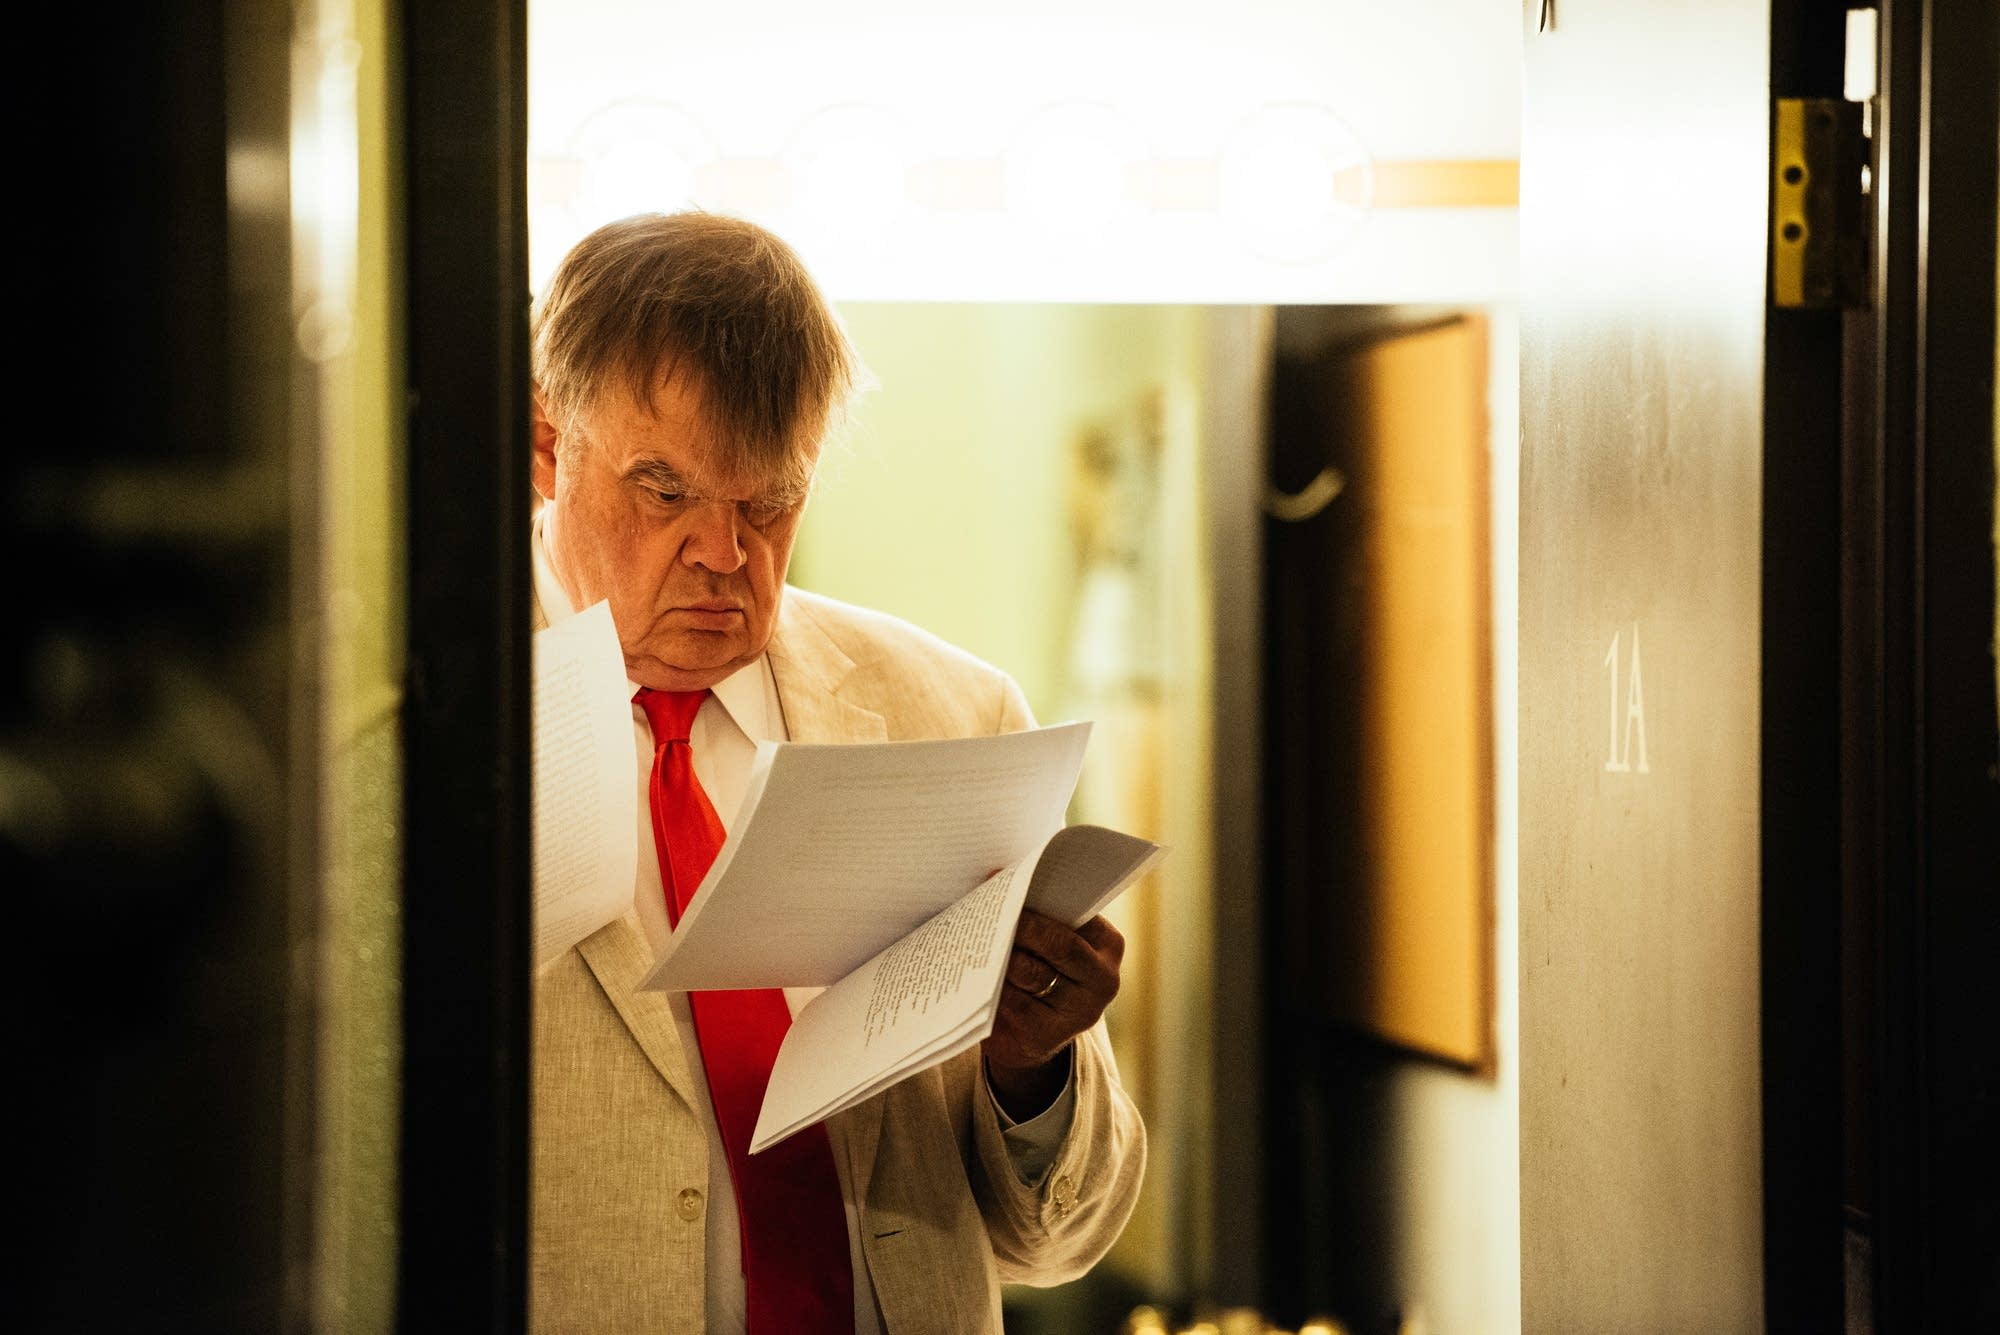 Keillor reads through scripts back stage at the Fitz on Feb. 27, 2016